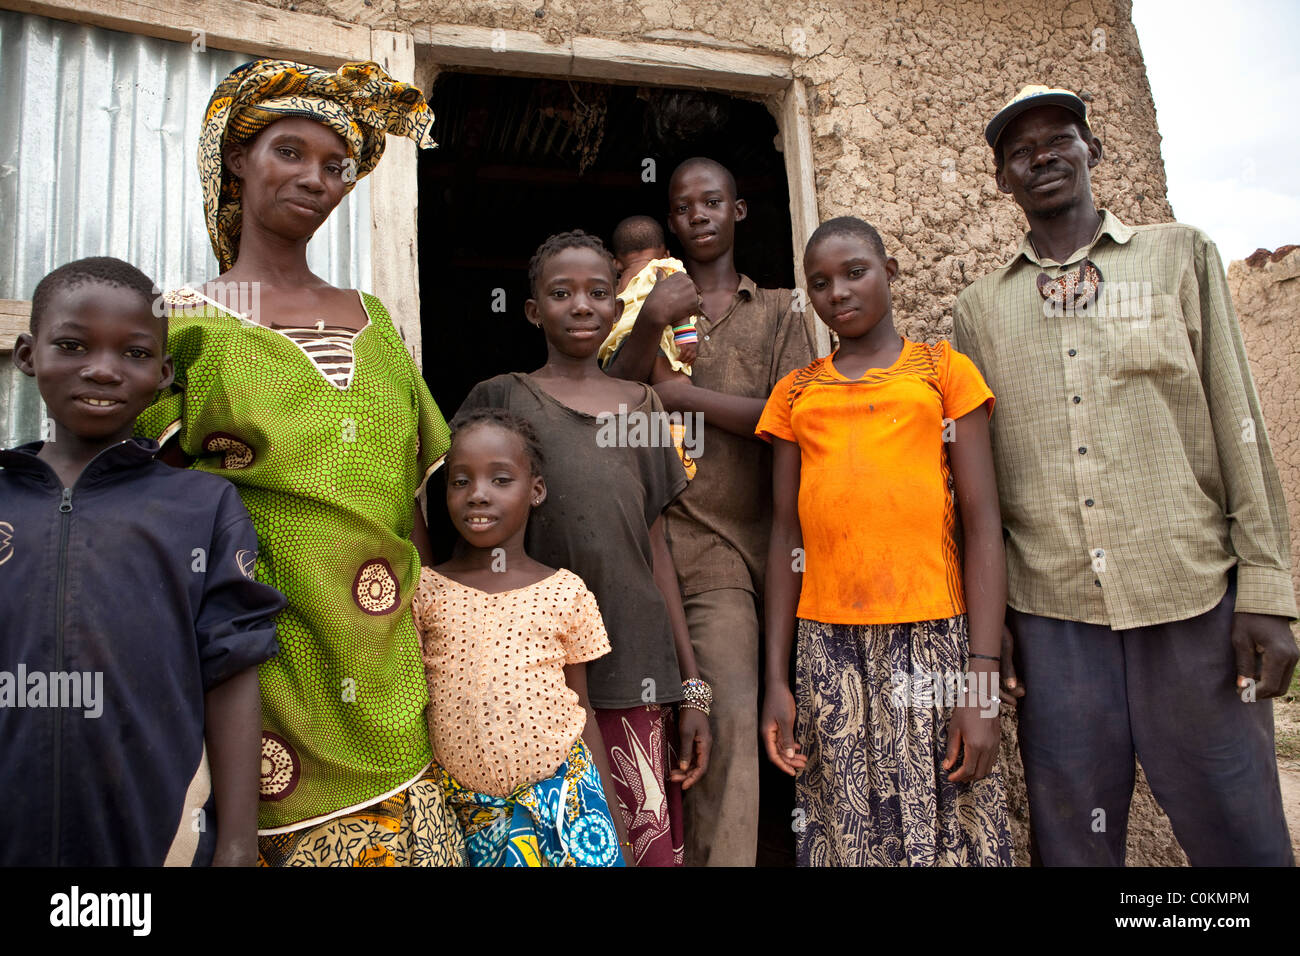 Portrait of a large family - Safo, Mali, West Africa. - Stock Image